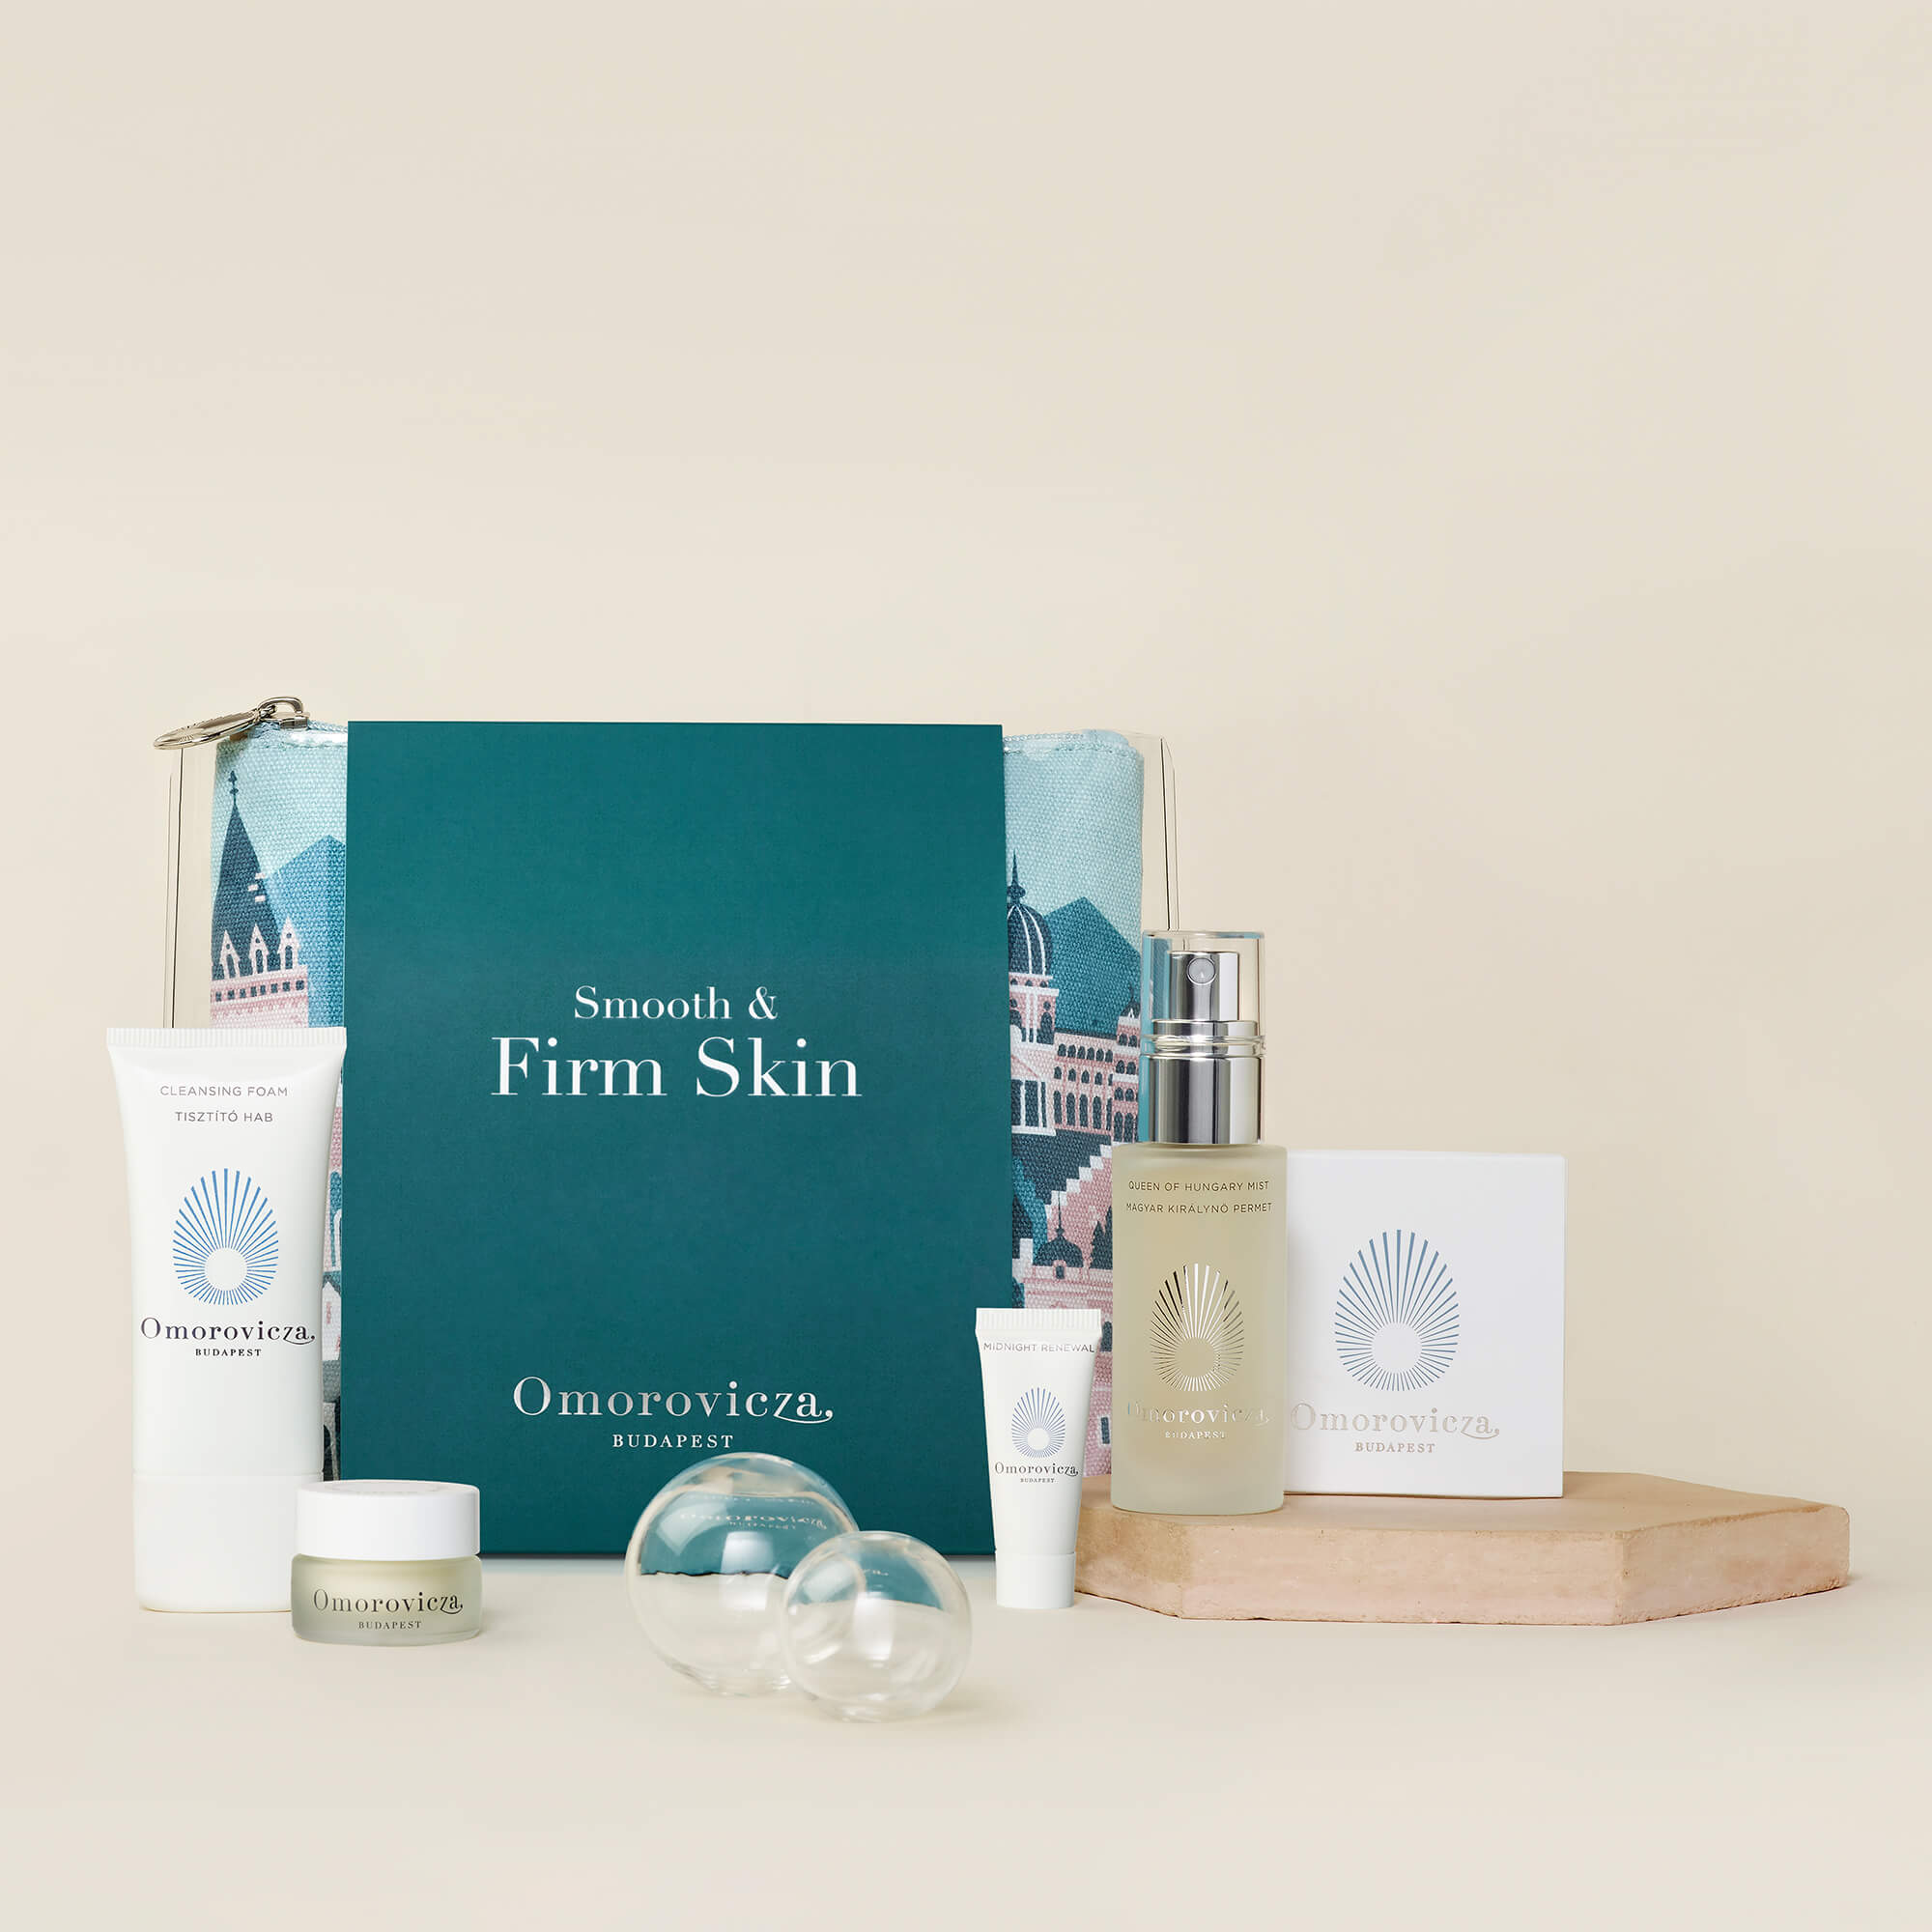 FIRM & SMOOTH TRIAL KIT